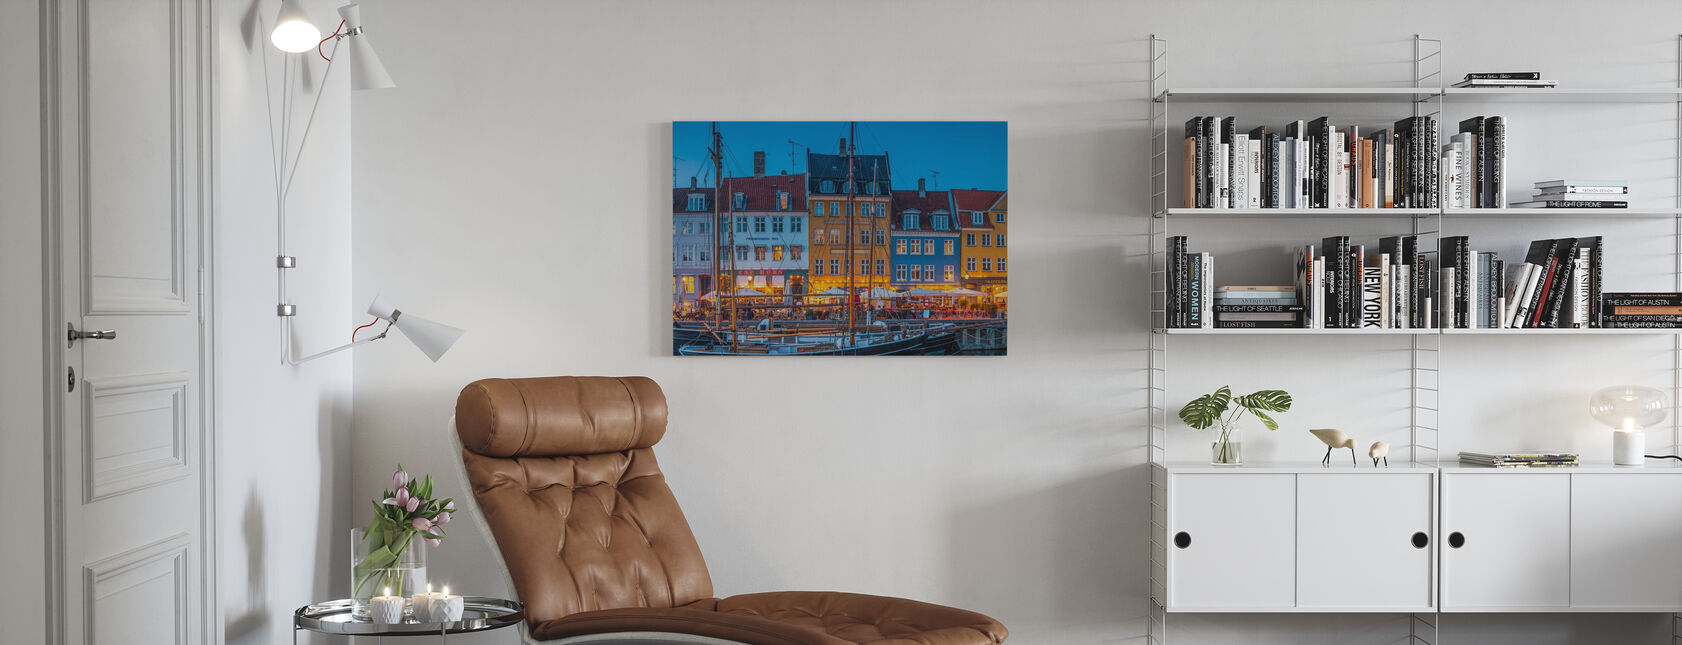 Colorful Bars and Restaurants - Canvas print - Living Room